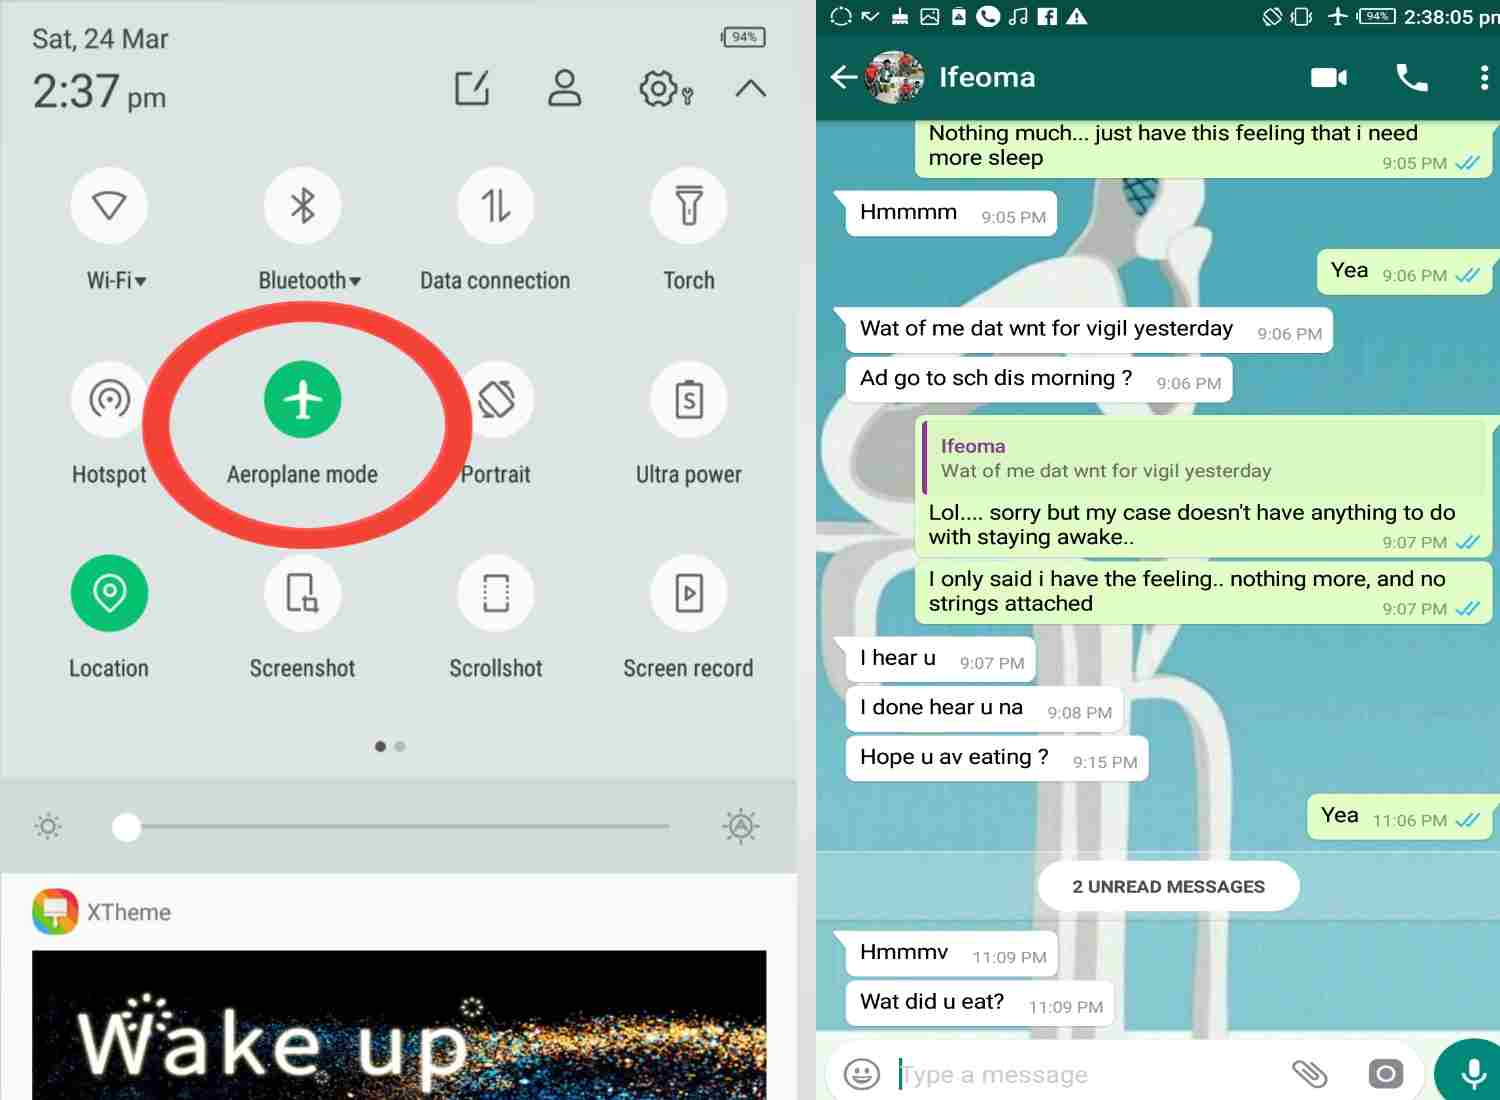 whatsapp tricks 101 - how to secretly read whatsapp messages without the sender knowing whether you've read them or not